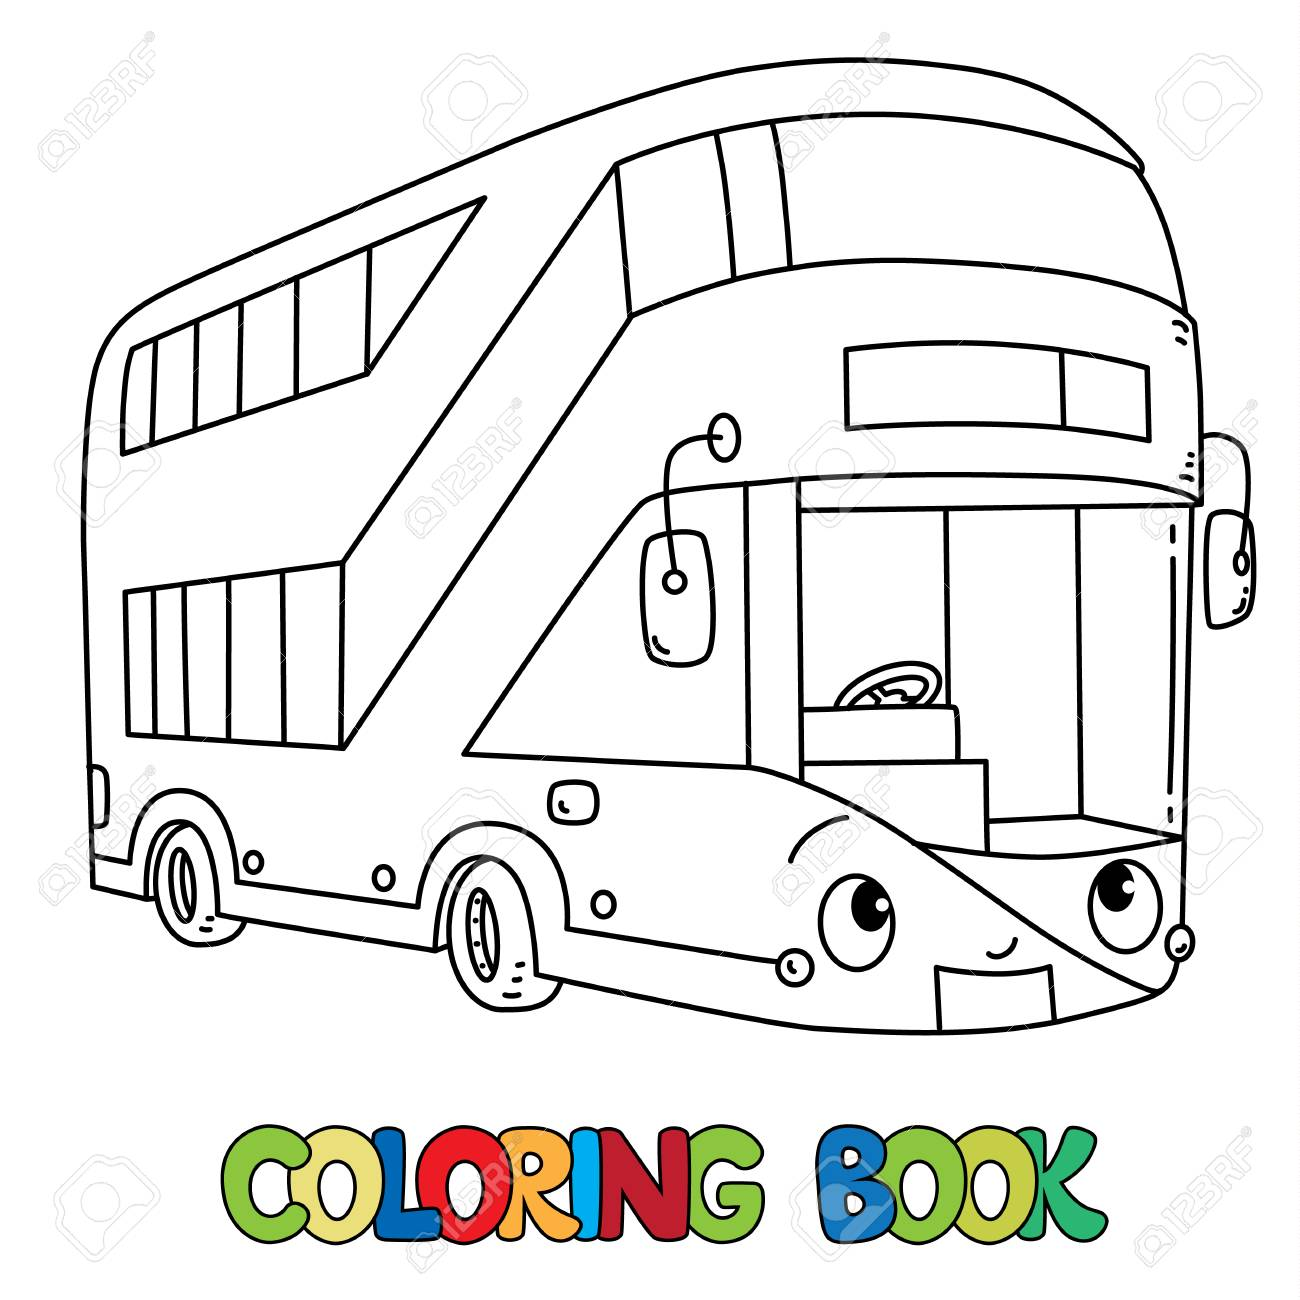 London Modern Double Decker Bus Coloring Book For Kids Small